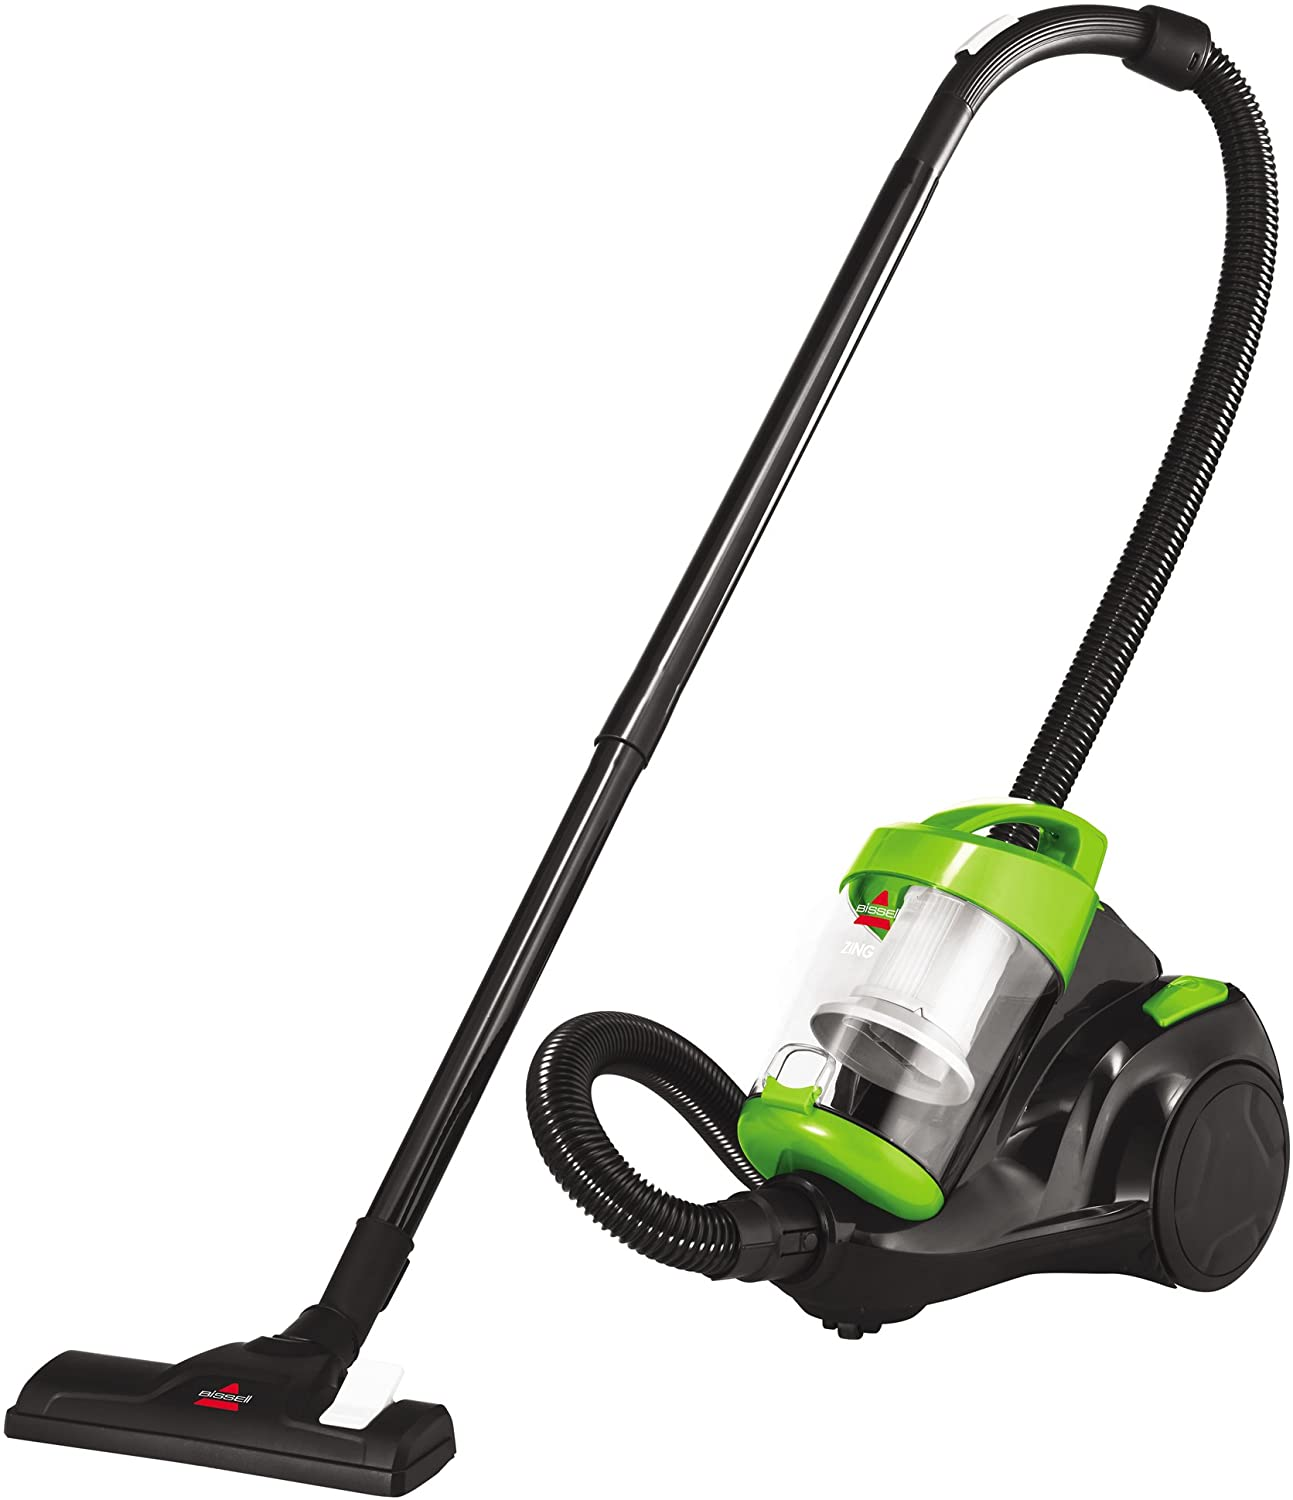 Classier: Buy Bissell Bissell Zing Canister, 2156A Vacuum, Green Bagless